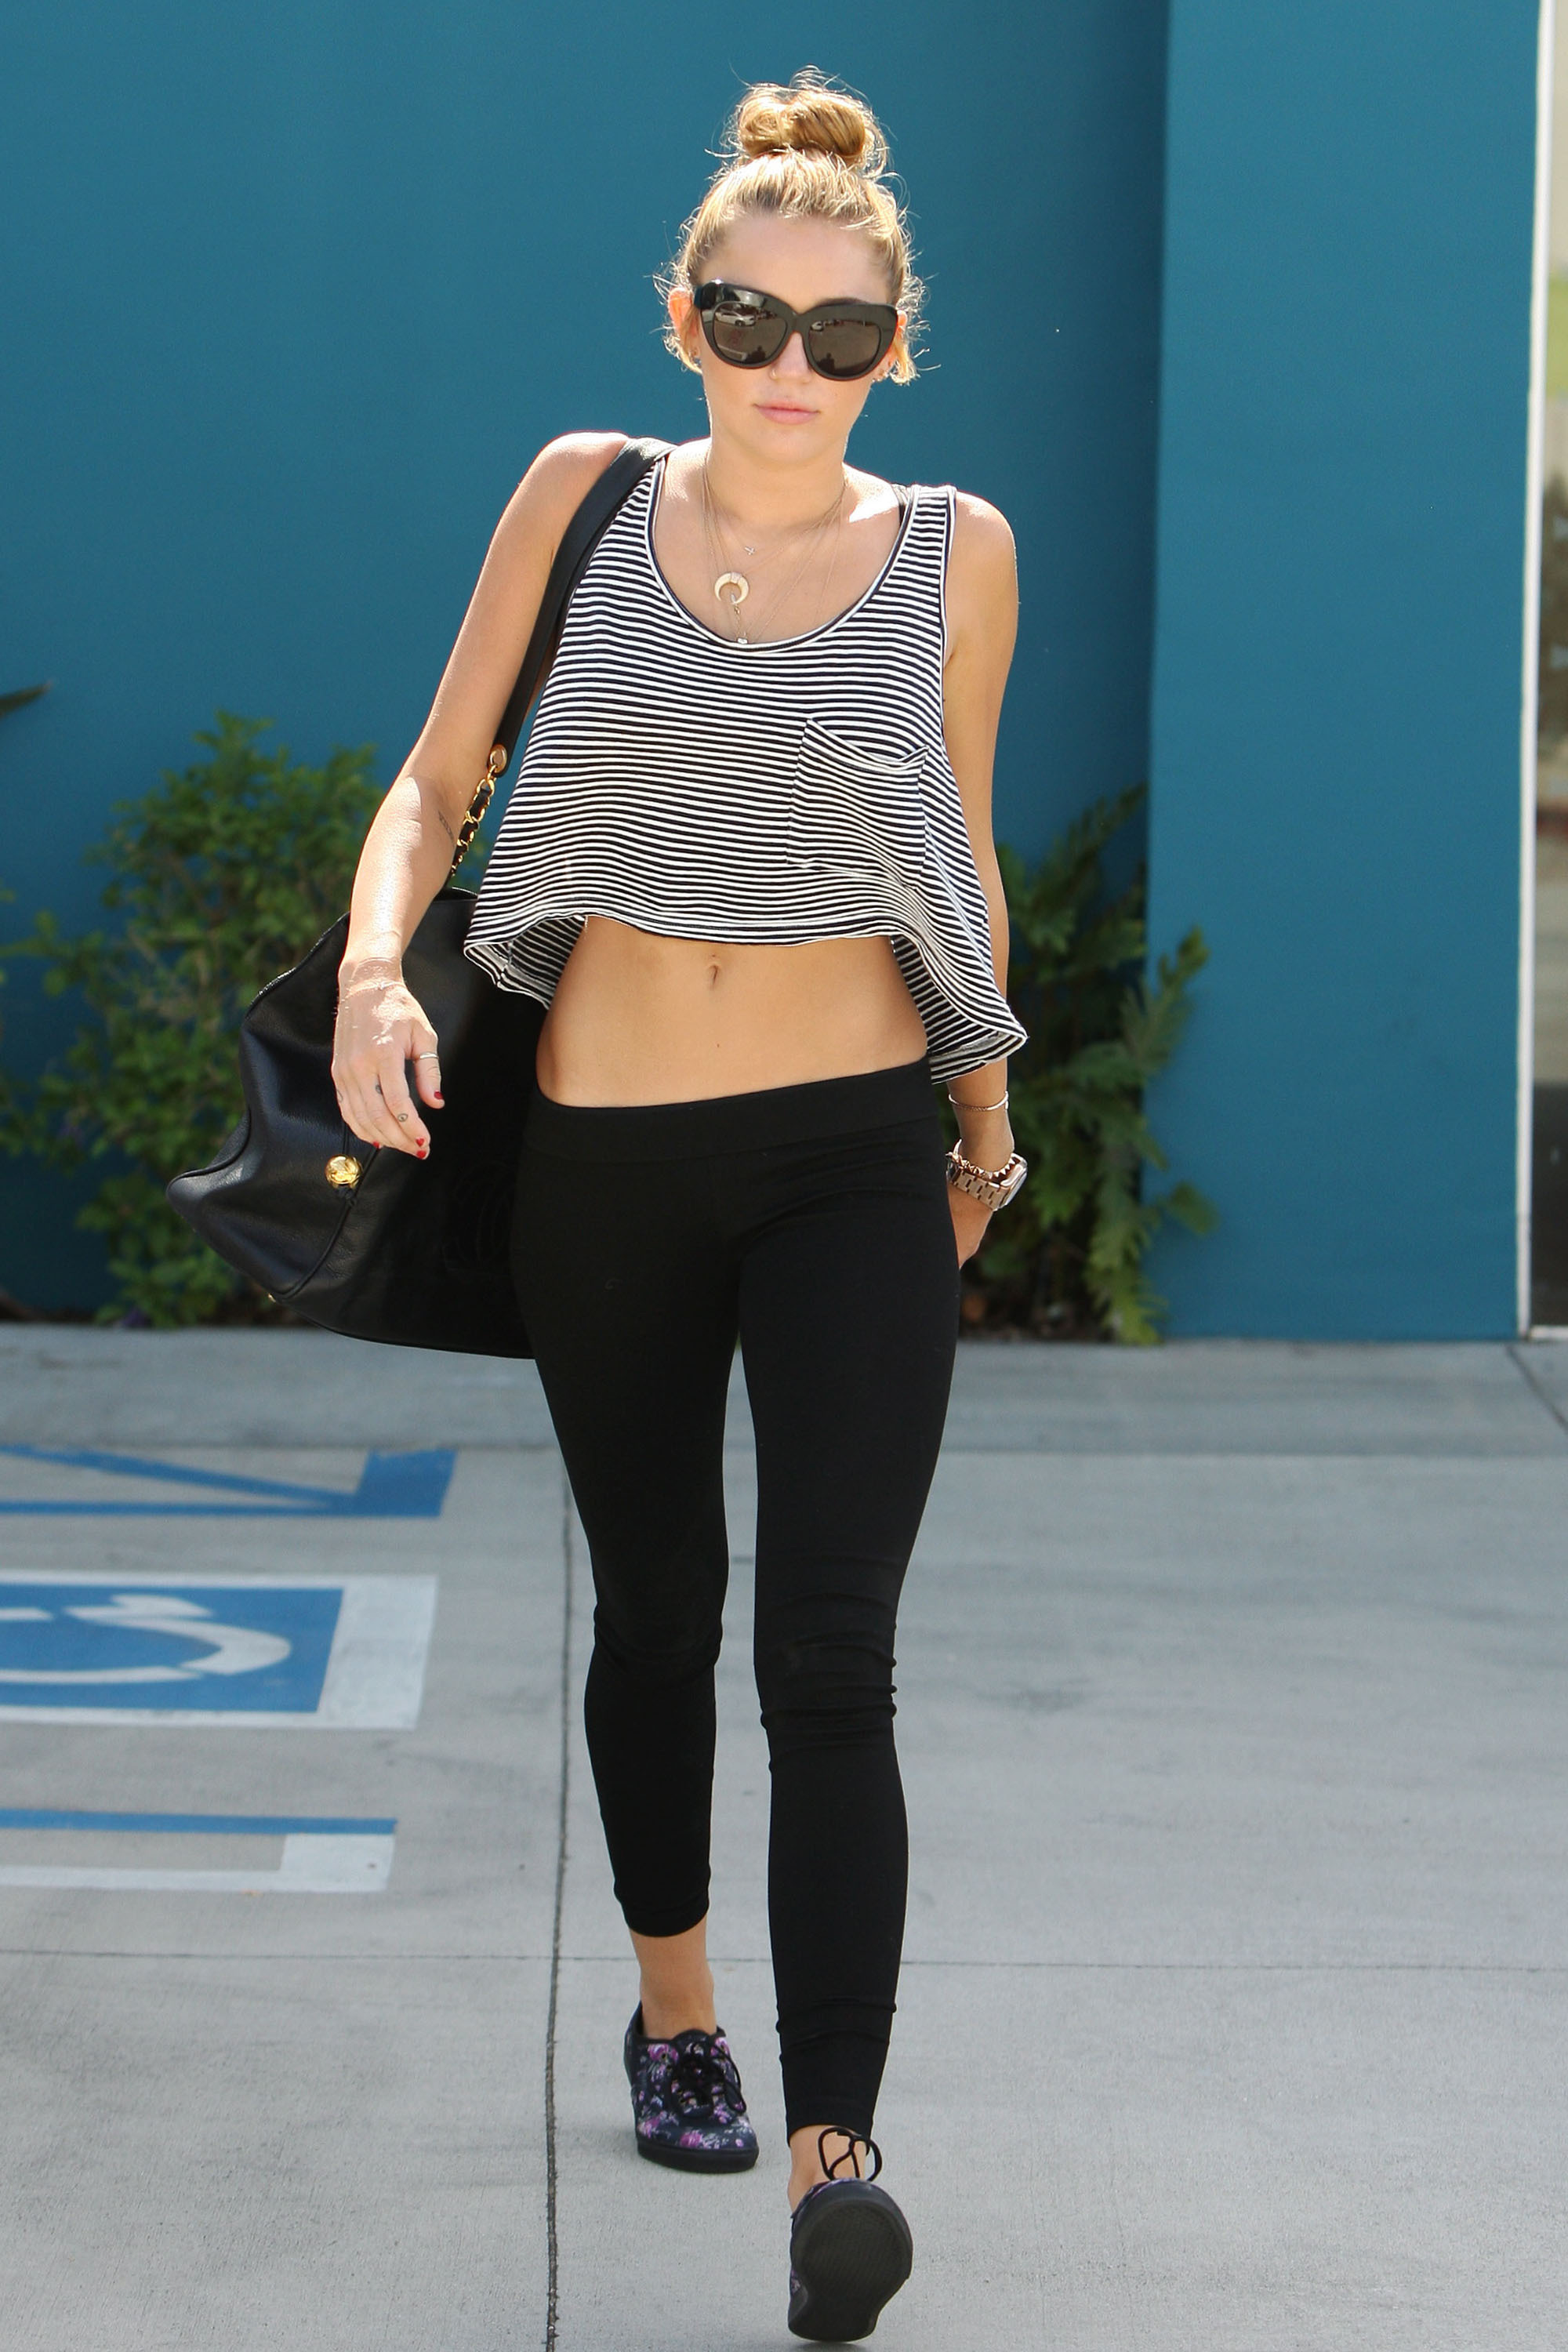 Miley Cyrus seen leaving the Winsor Pilates class in West Hollywood Los Angeles, California - 10.07.12  Featuring: Miley Cyrus When: 10 Jul 2012 Credit: WENN